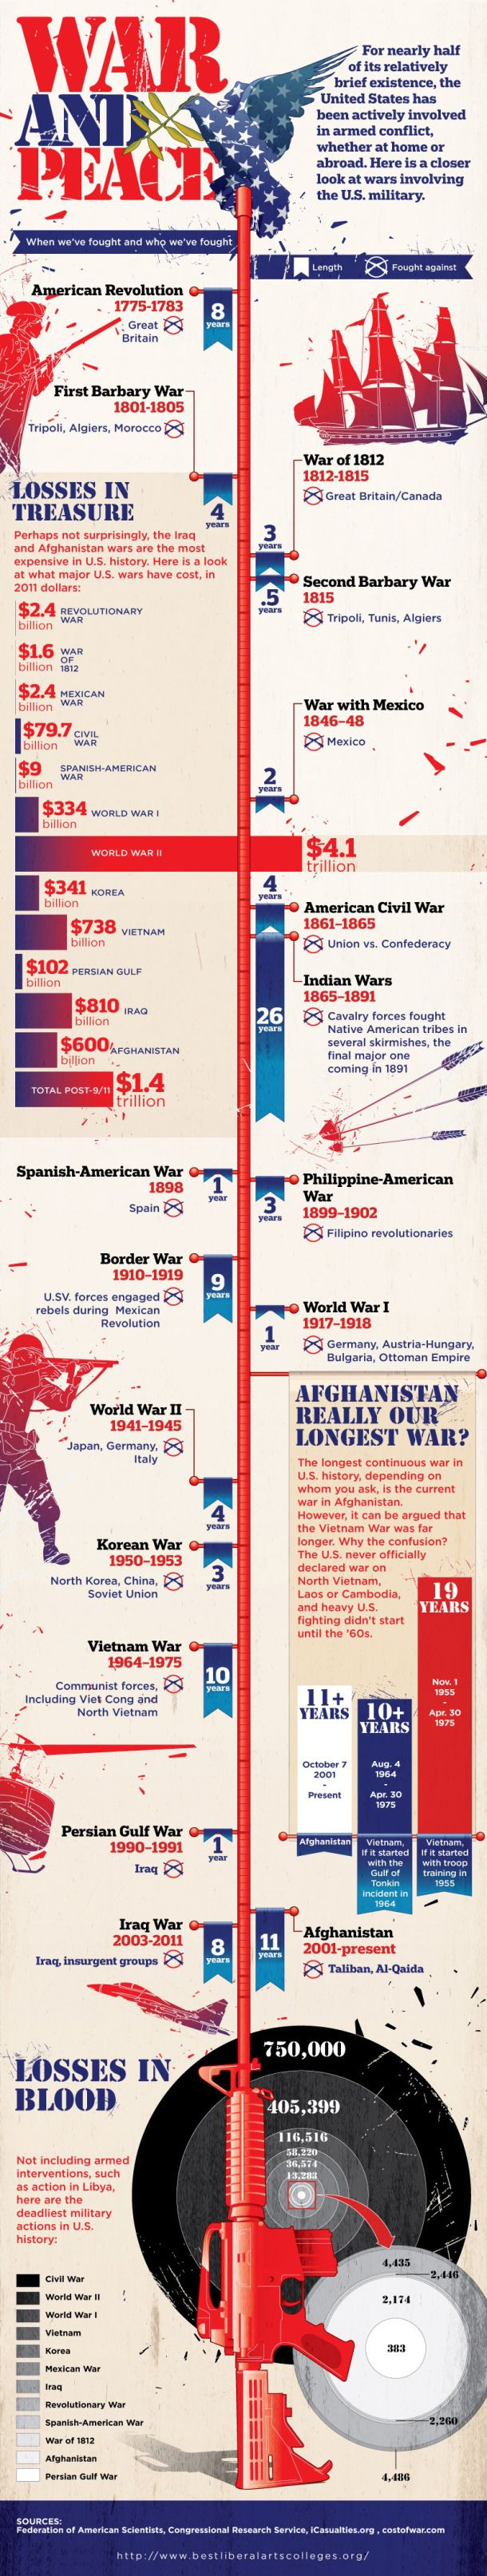 War and Peace - A Closer Look at Wars Involving the US Military